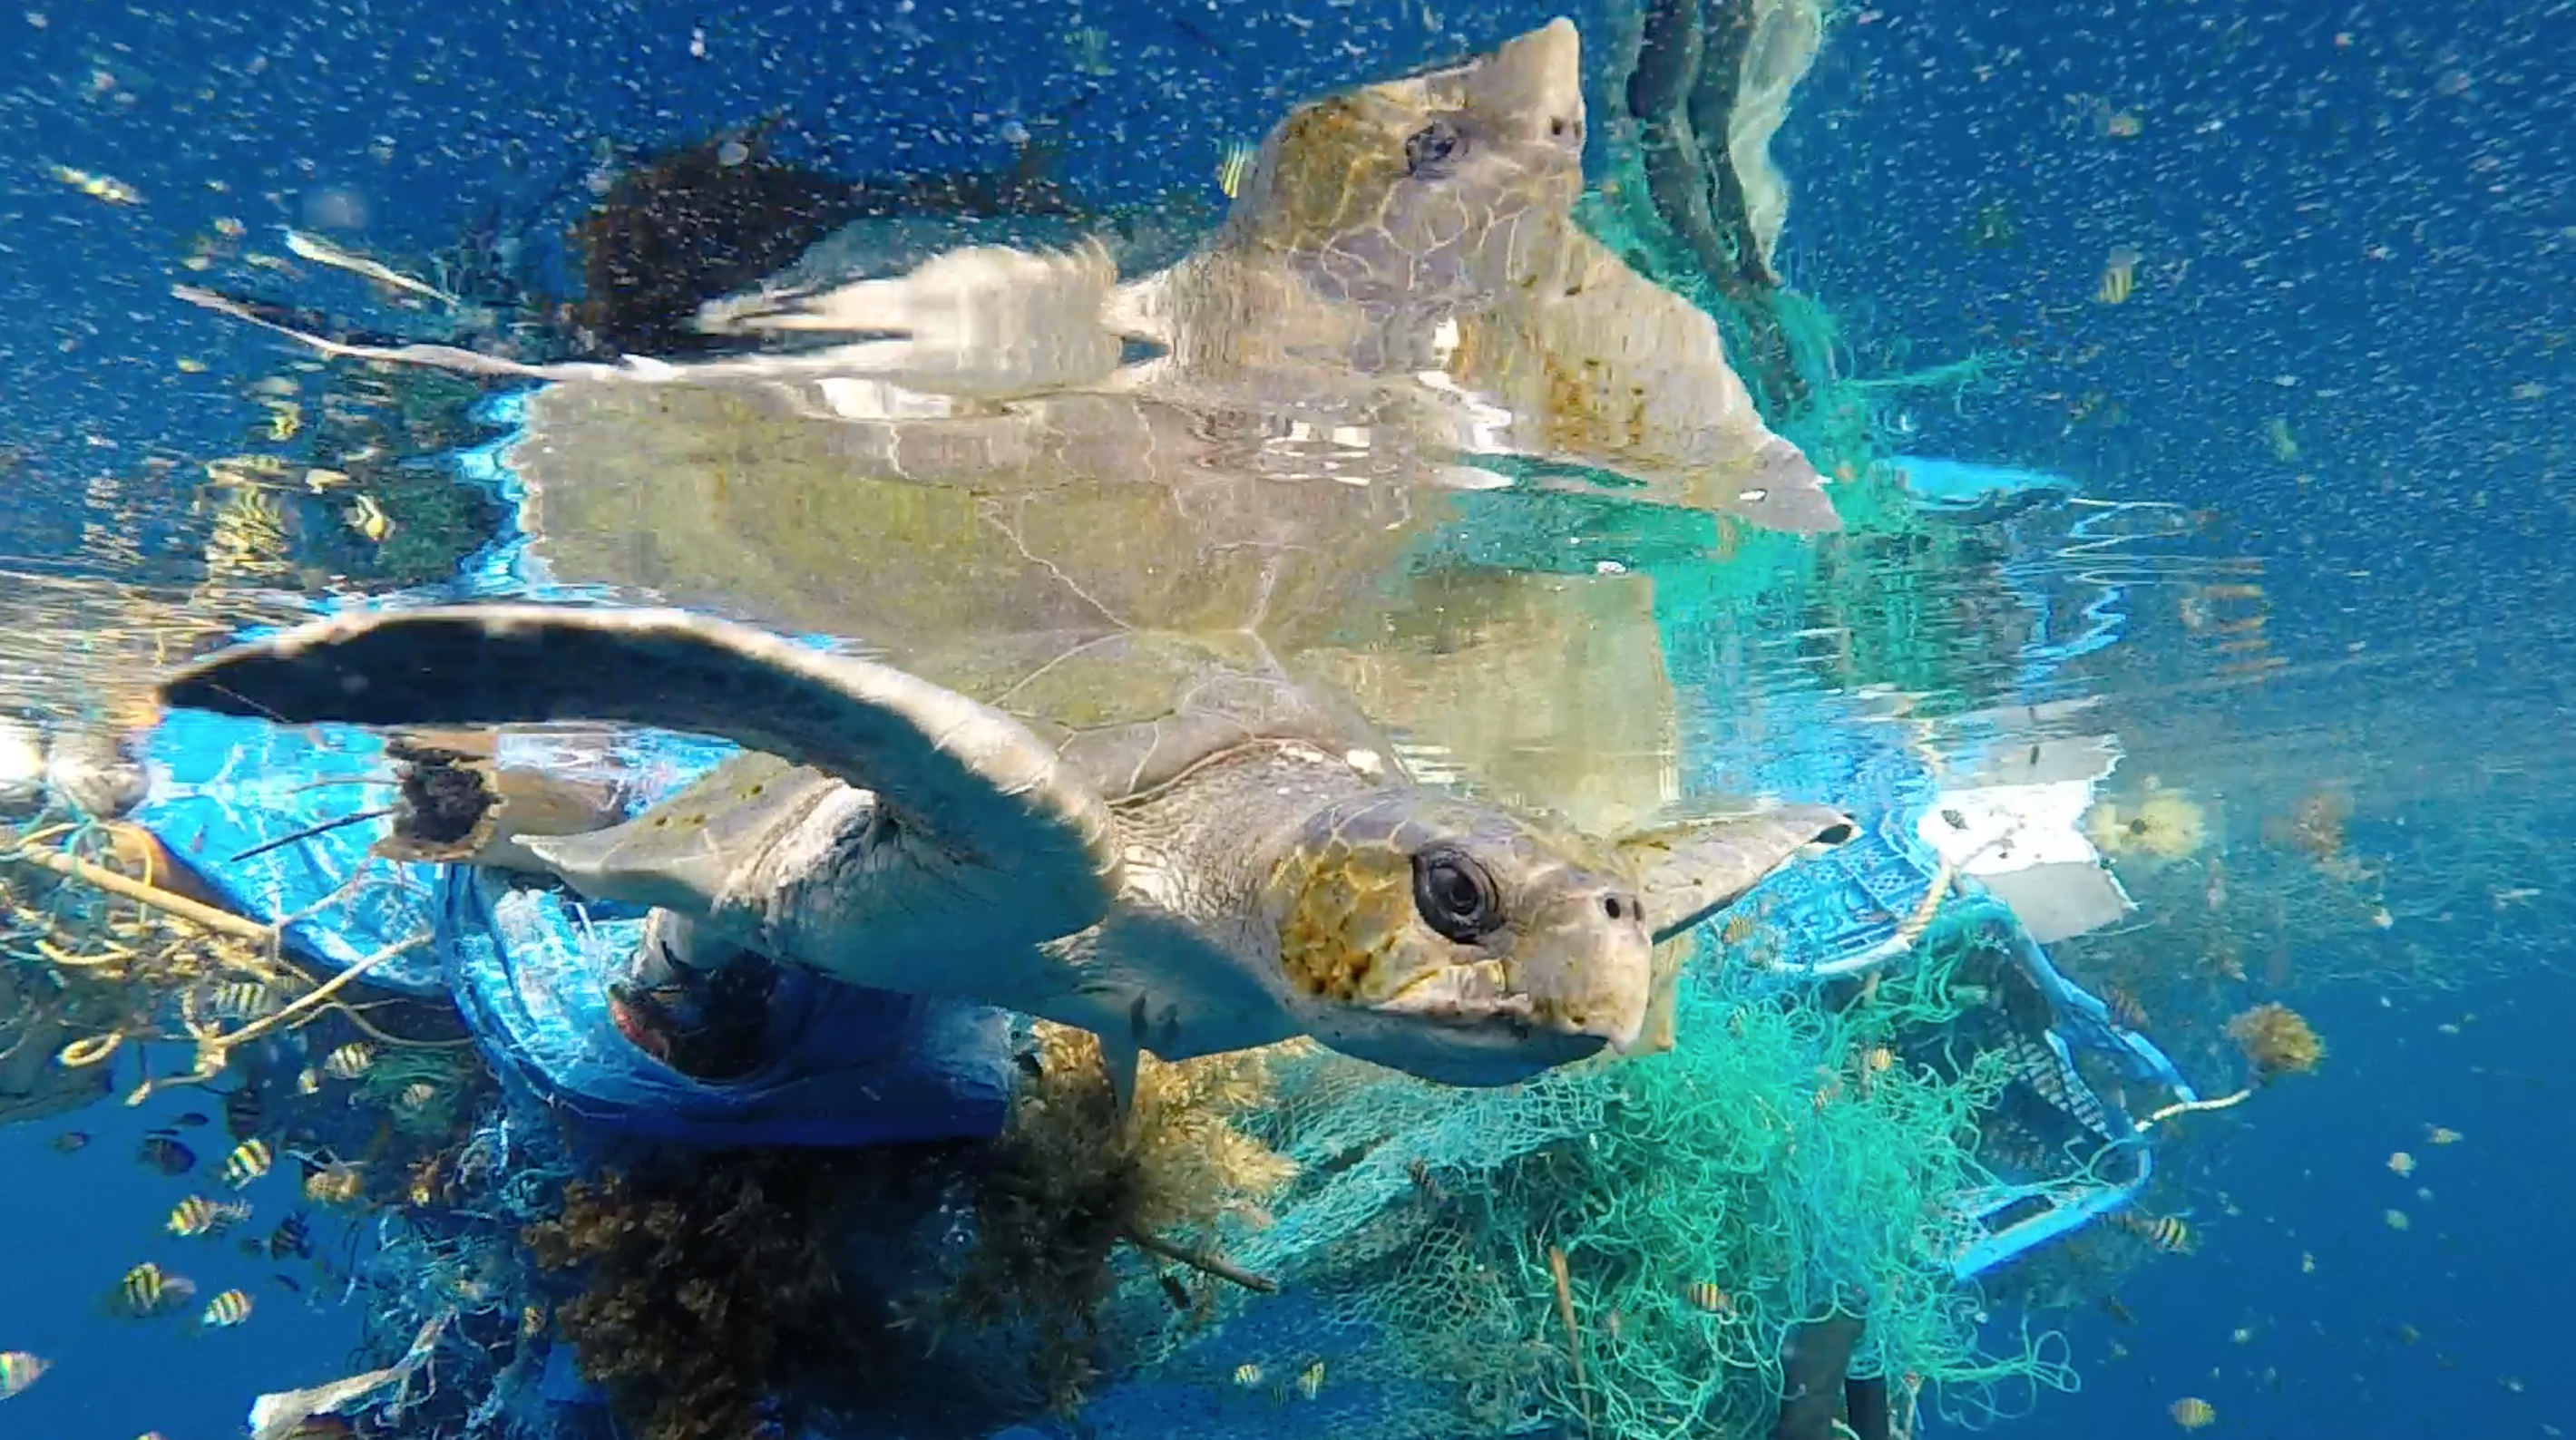 An entangled olive ridley turtle in the Maldives. (Photo credit: Martin Stelfox- founder of the Olive Ridley Project).